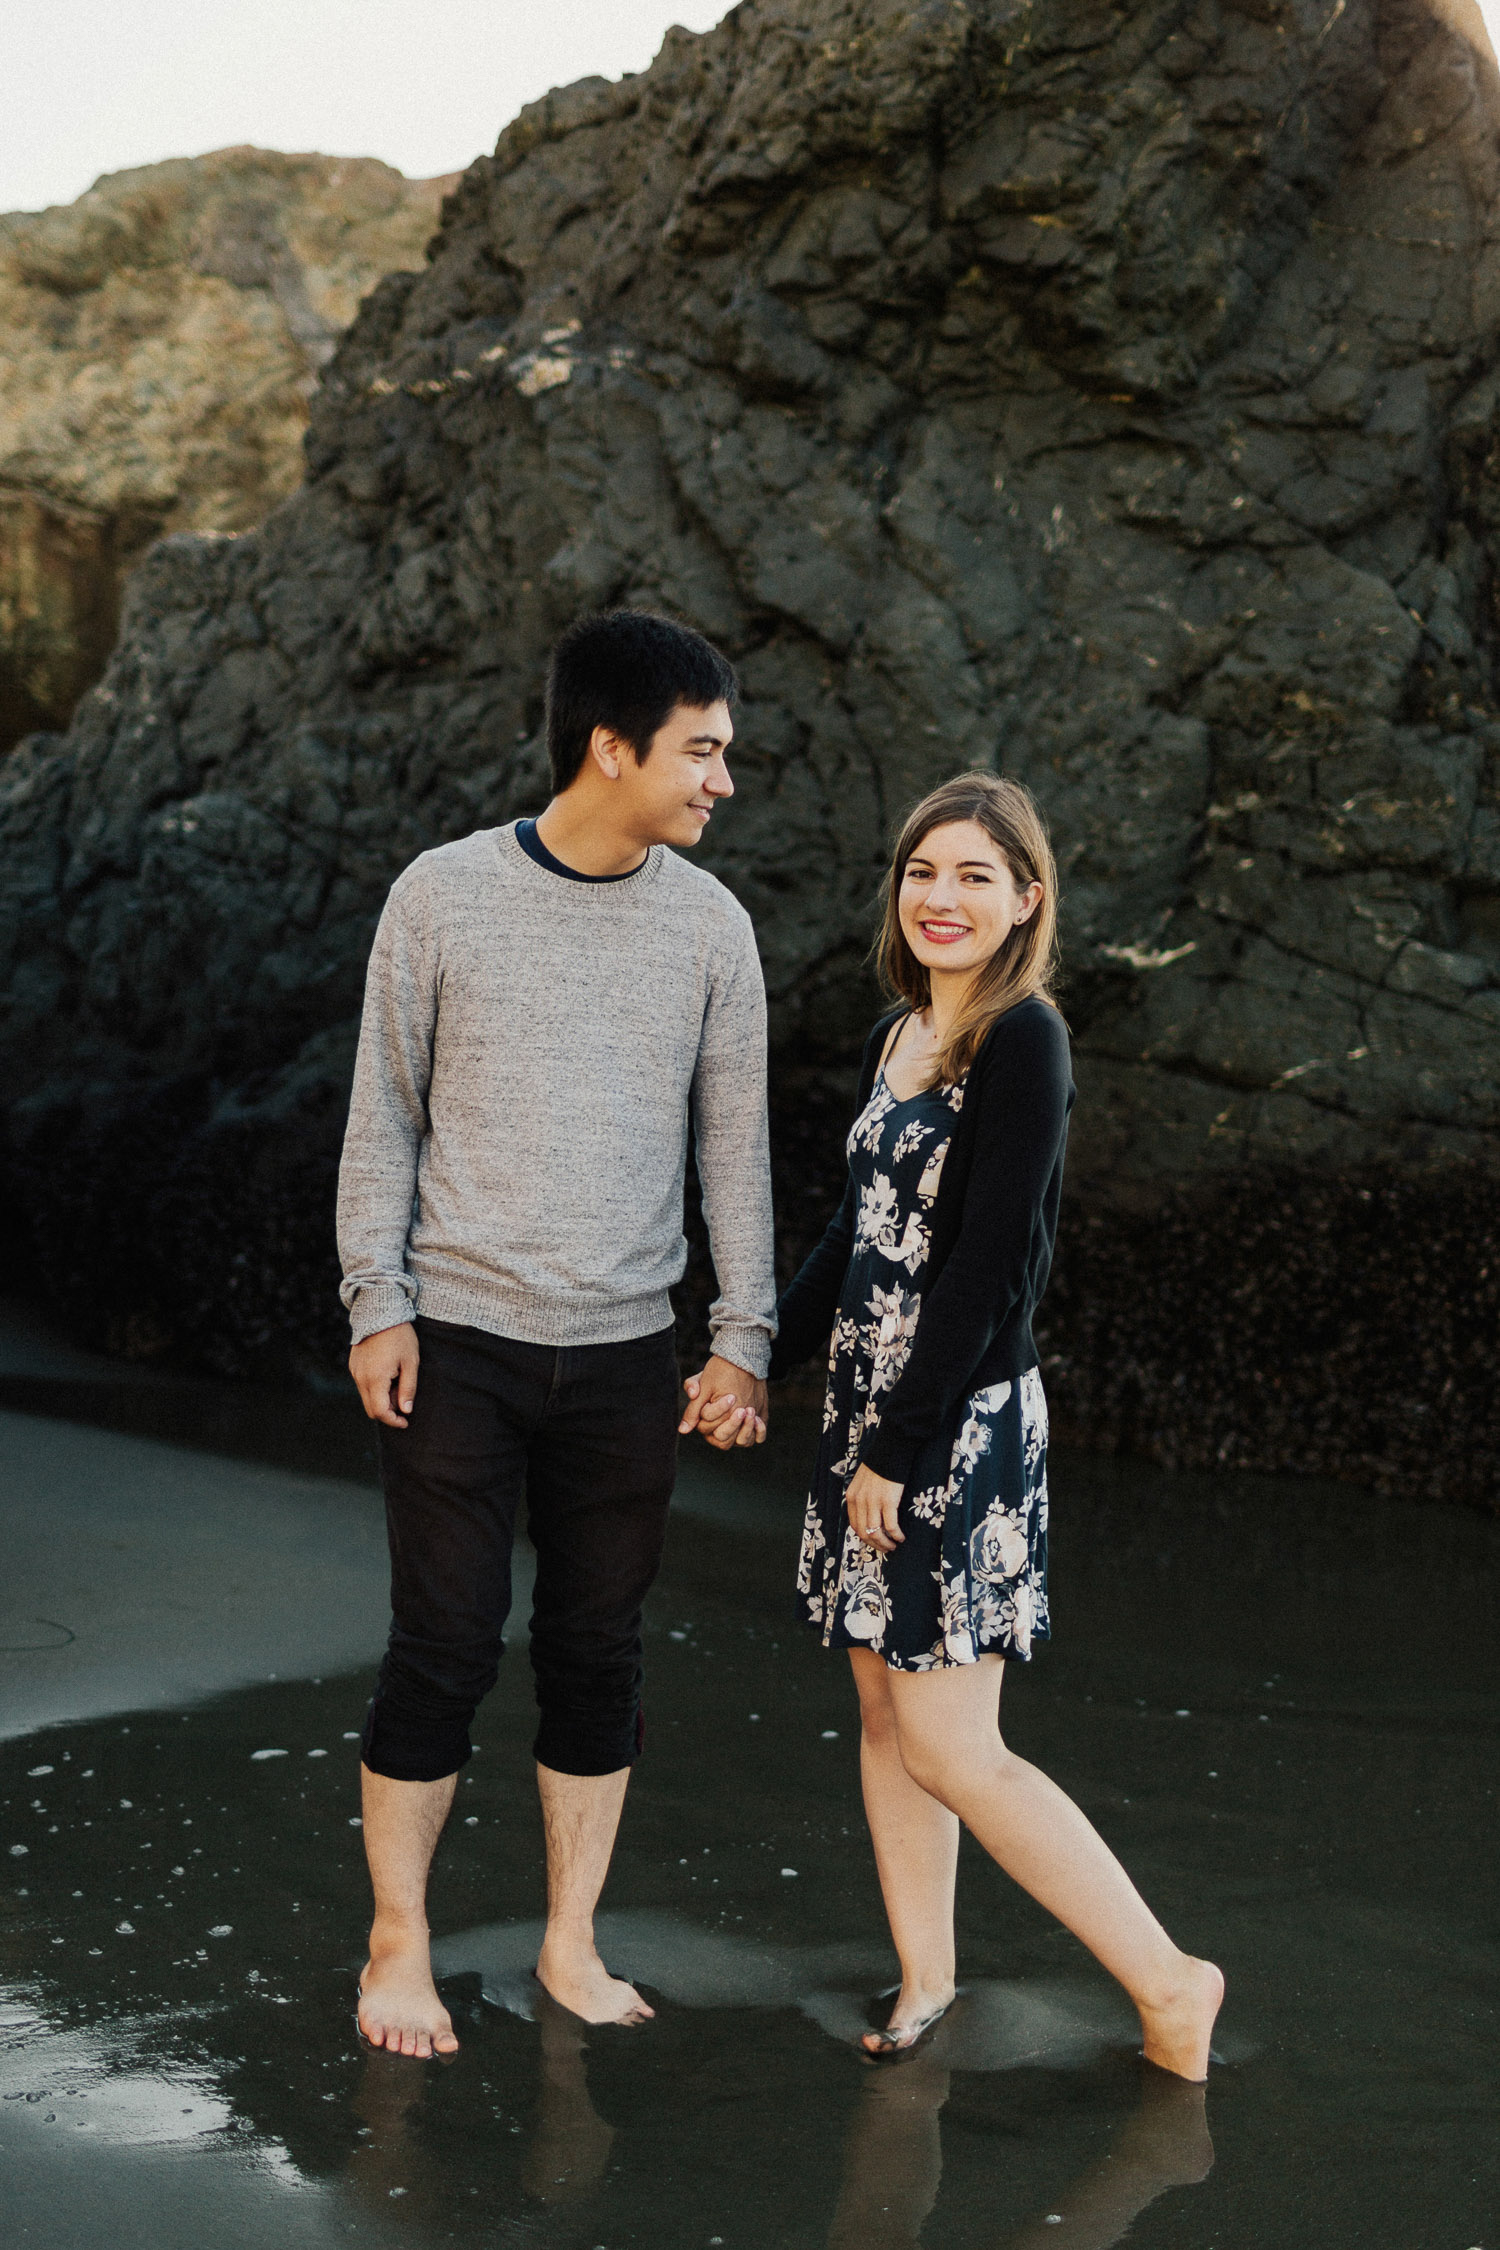 Image of couple hold hands together smiling on beach